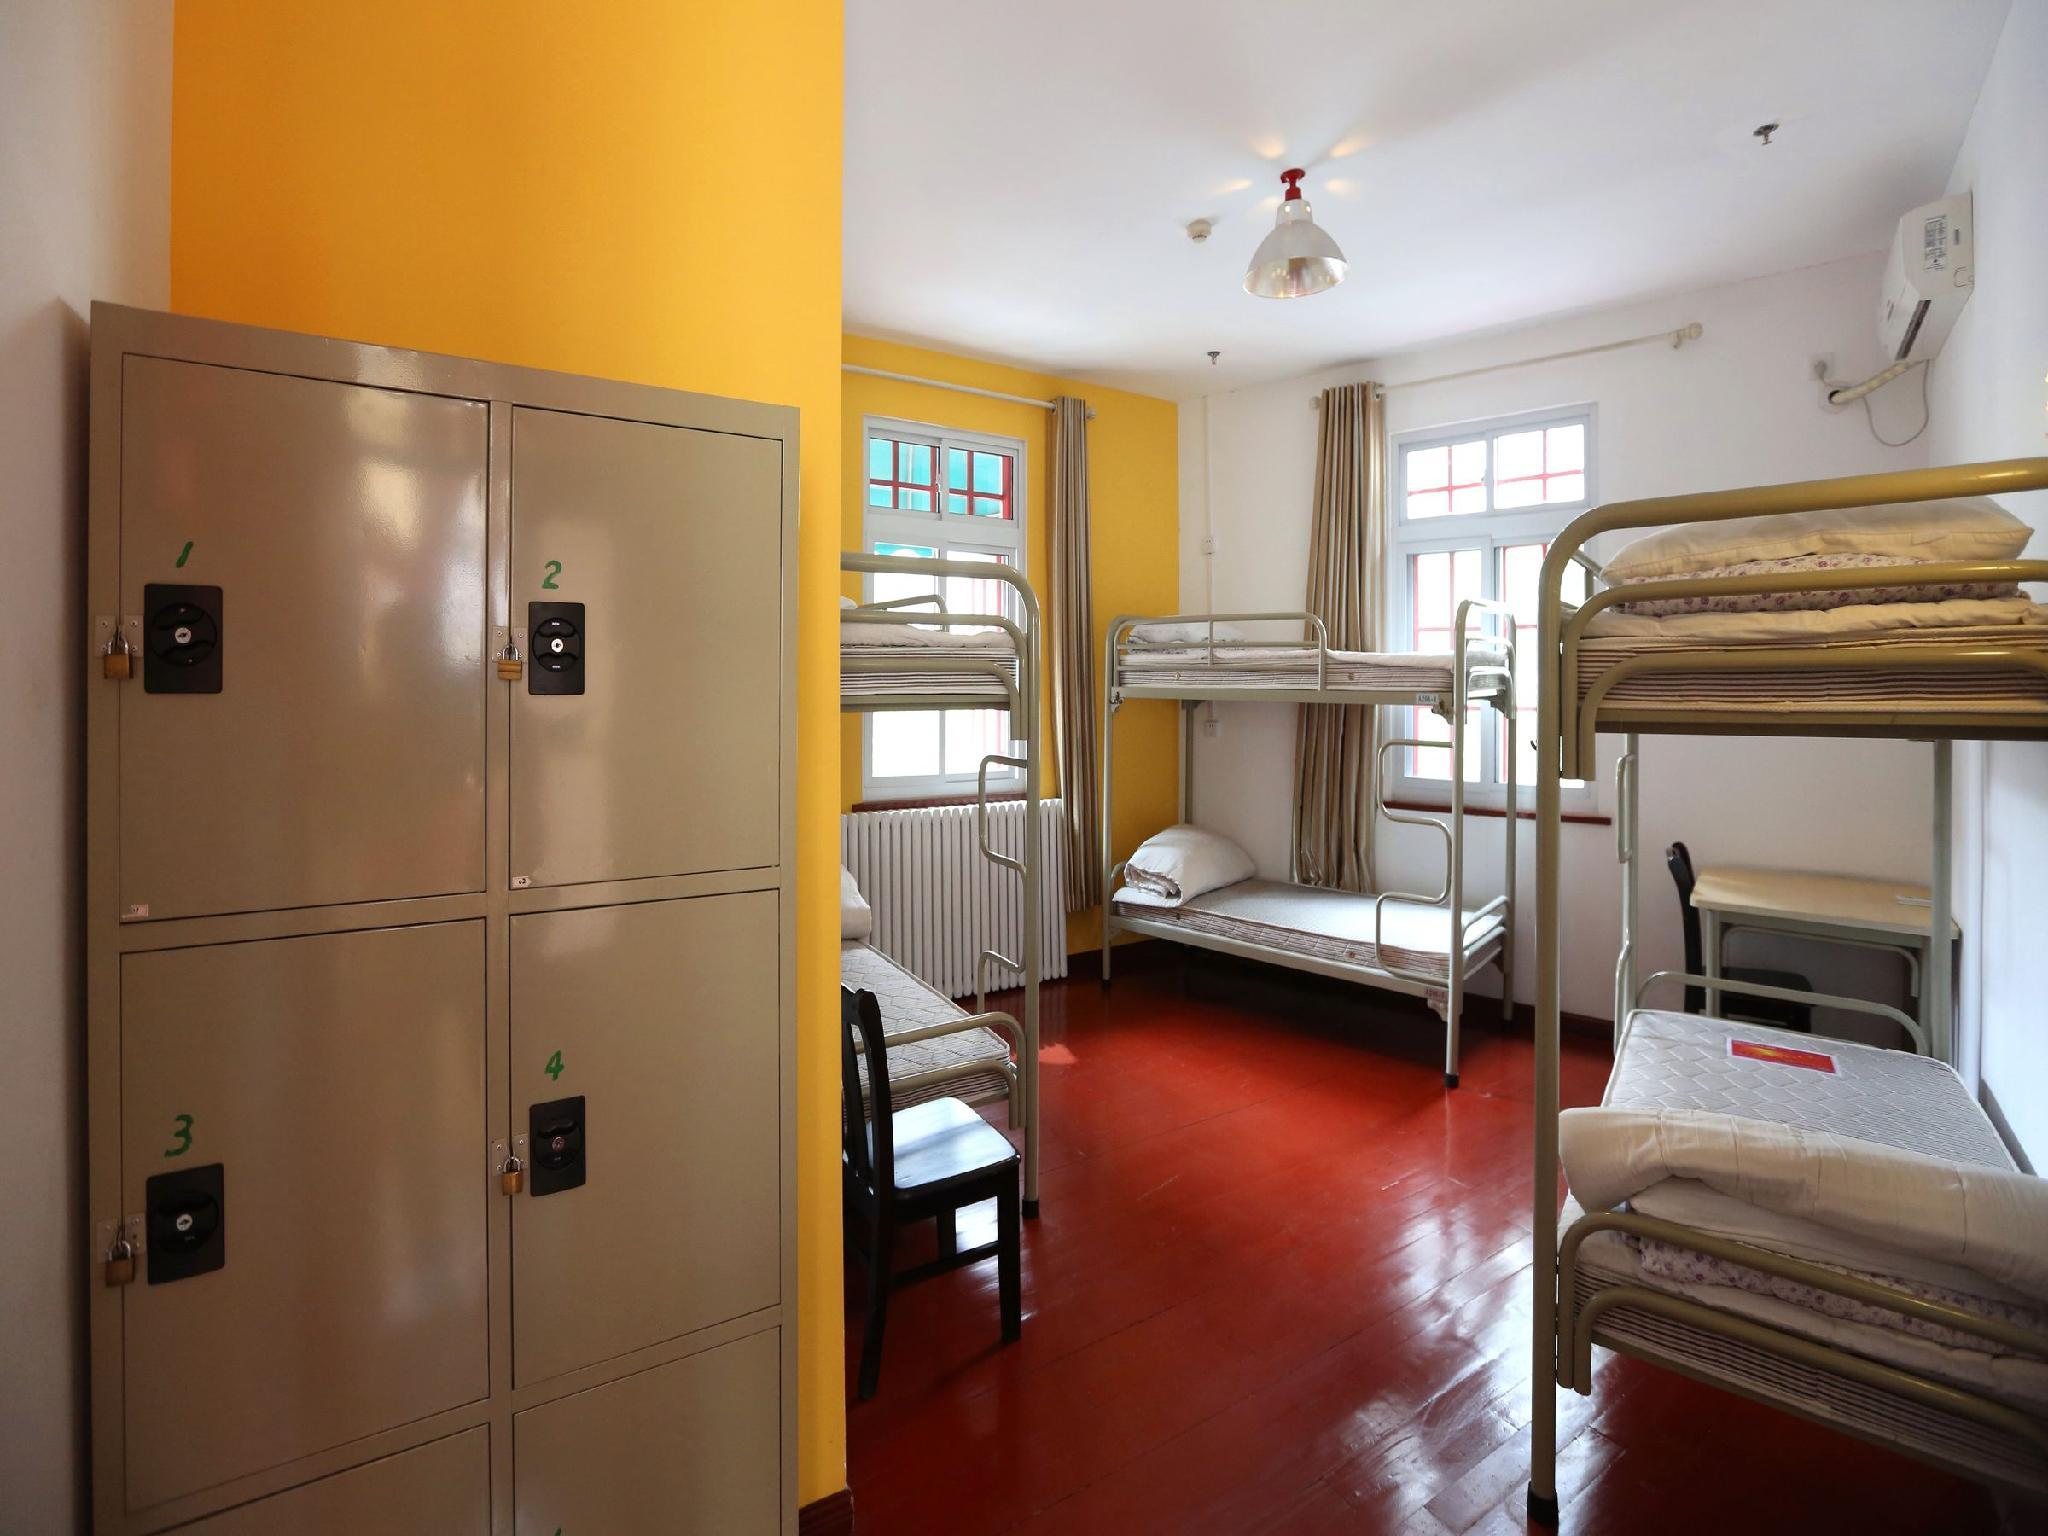 Llit individual en dormitori compartit de 6 llits ‒ Mixt (1 Person in 6-Bed Dormitory - Mixed)